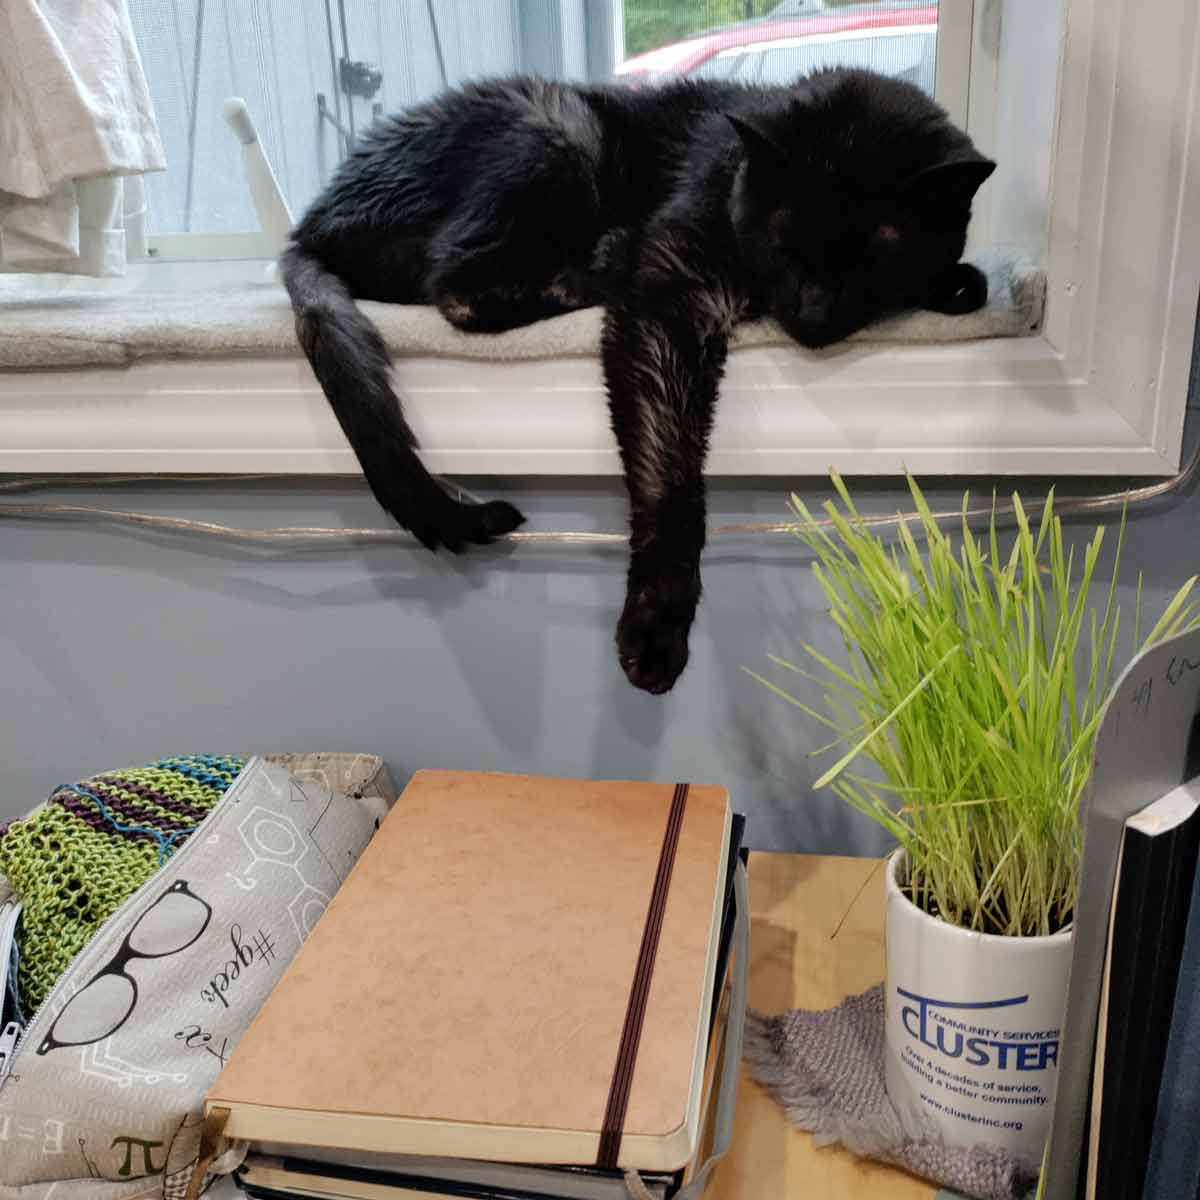 Black cat napping on a sunny windowsill. His front paw is almost melting off the edge. Below him on the desk is a pile of notebooks, a project bag with knitting sticking out, and a mug with cat grass.